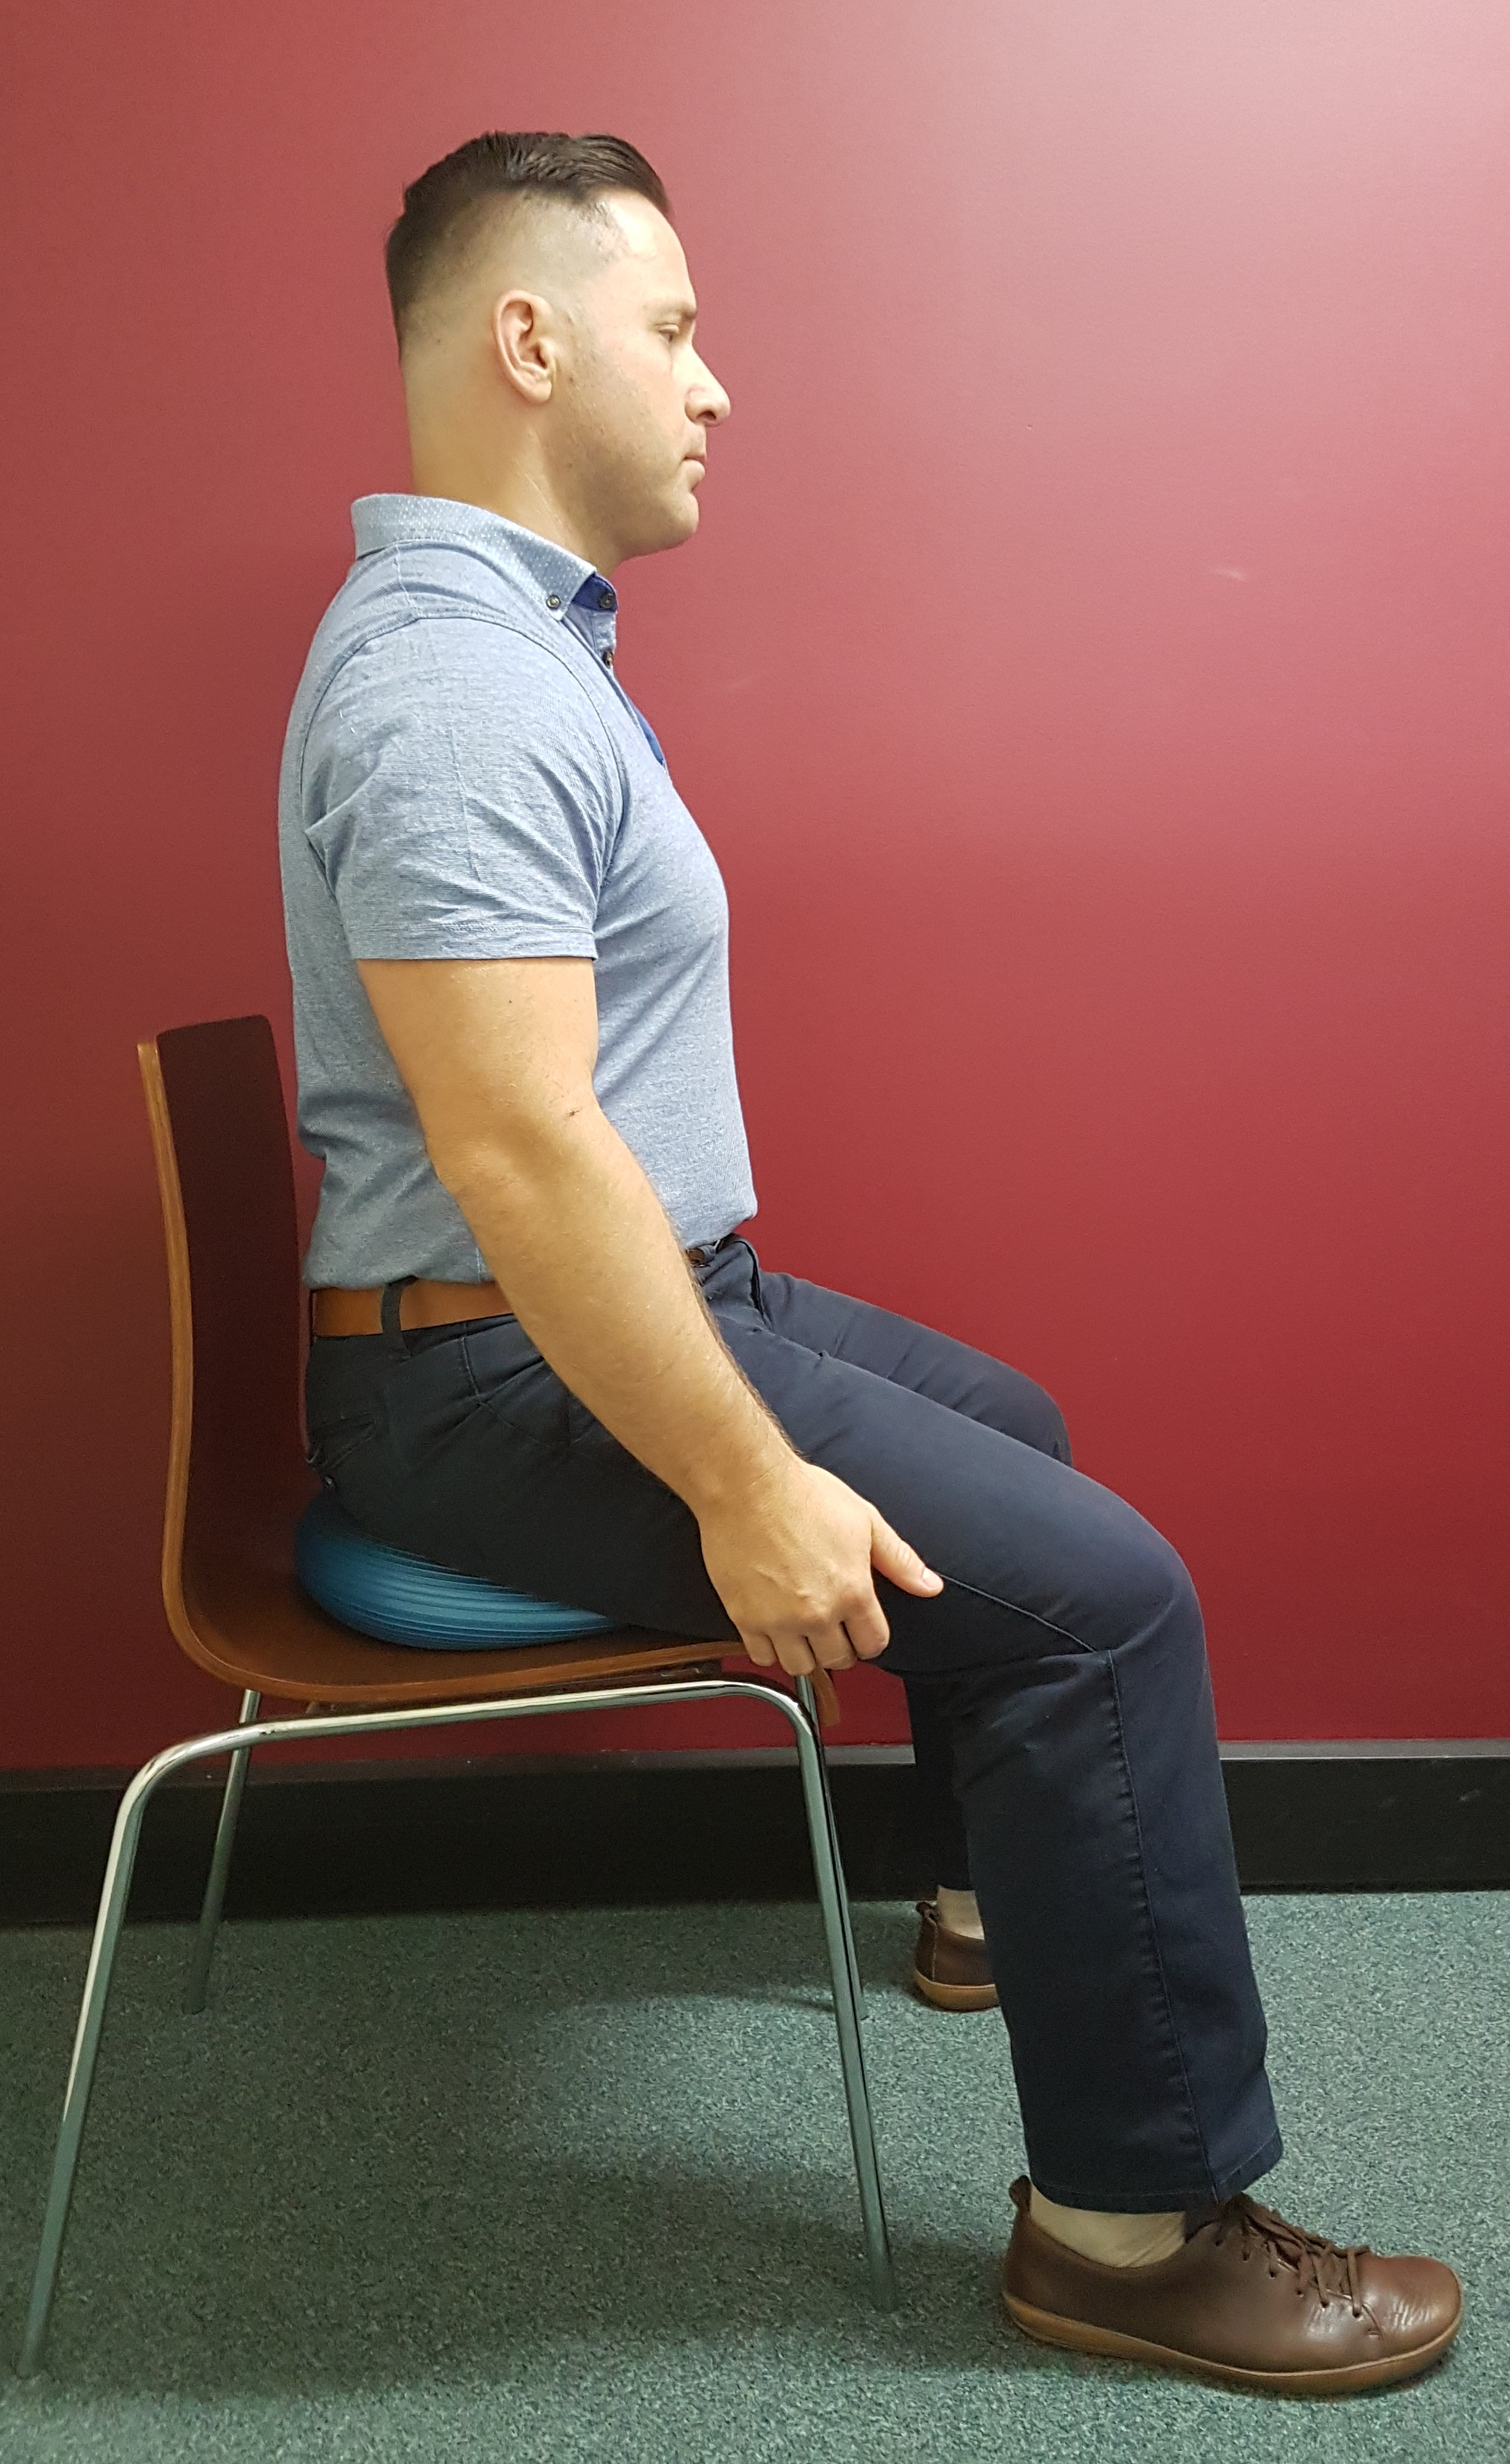 Dr B Sitting with Good Posture